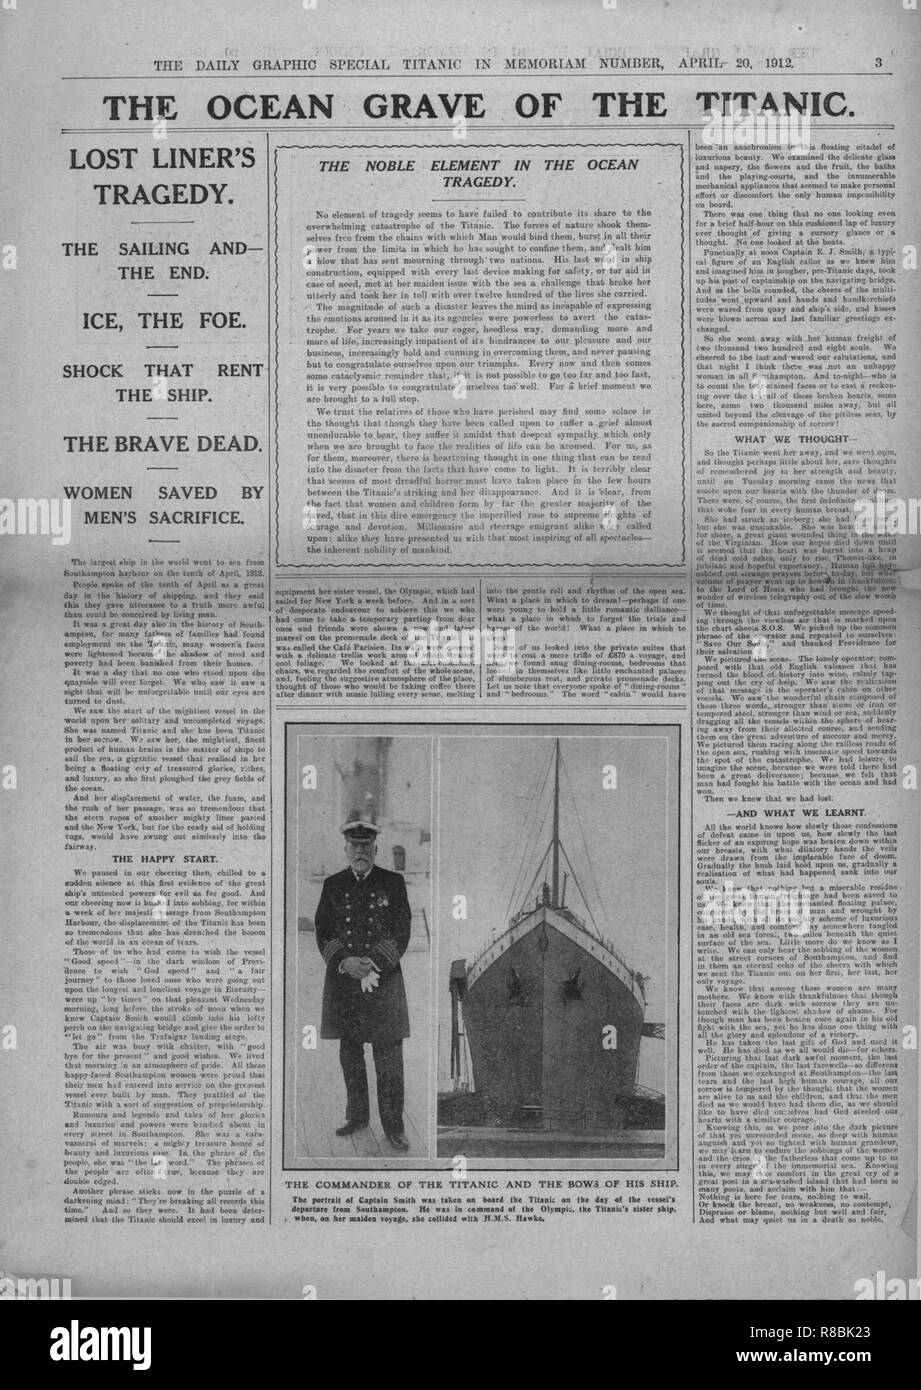 'The Ocean Grave of the Titanic', and photograph of Captain Edward Smith, April 20, 1912. Article entitled 'The Ocean Grave of the Titanic', and photograph of Smith: 'The Commander of the Titanic and the Bows of his Ship'. Captain Edward Smith (1850-1912) went down with his ship, and consequently became an icon of British 'stiff upper lip' spirit, due to his stoicism and fortitude in the face of adversity. The White Star Line ship RMS 'Titanic' struck an iceberg in thick fog off Newfoundland on 14 April 1912. She was the largest and most luxurious ocean liner of her time, and thought to be uns - Stock Image